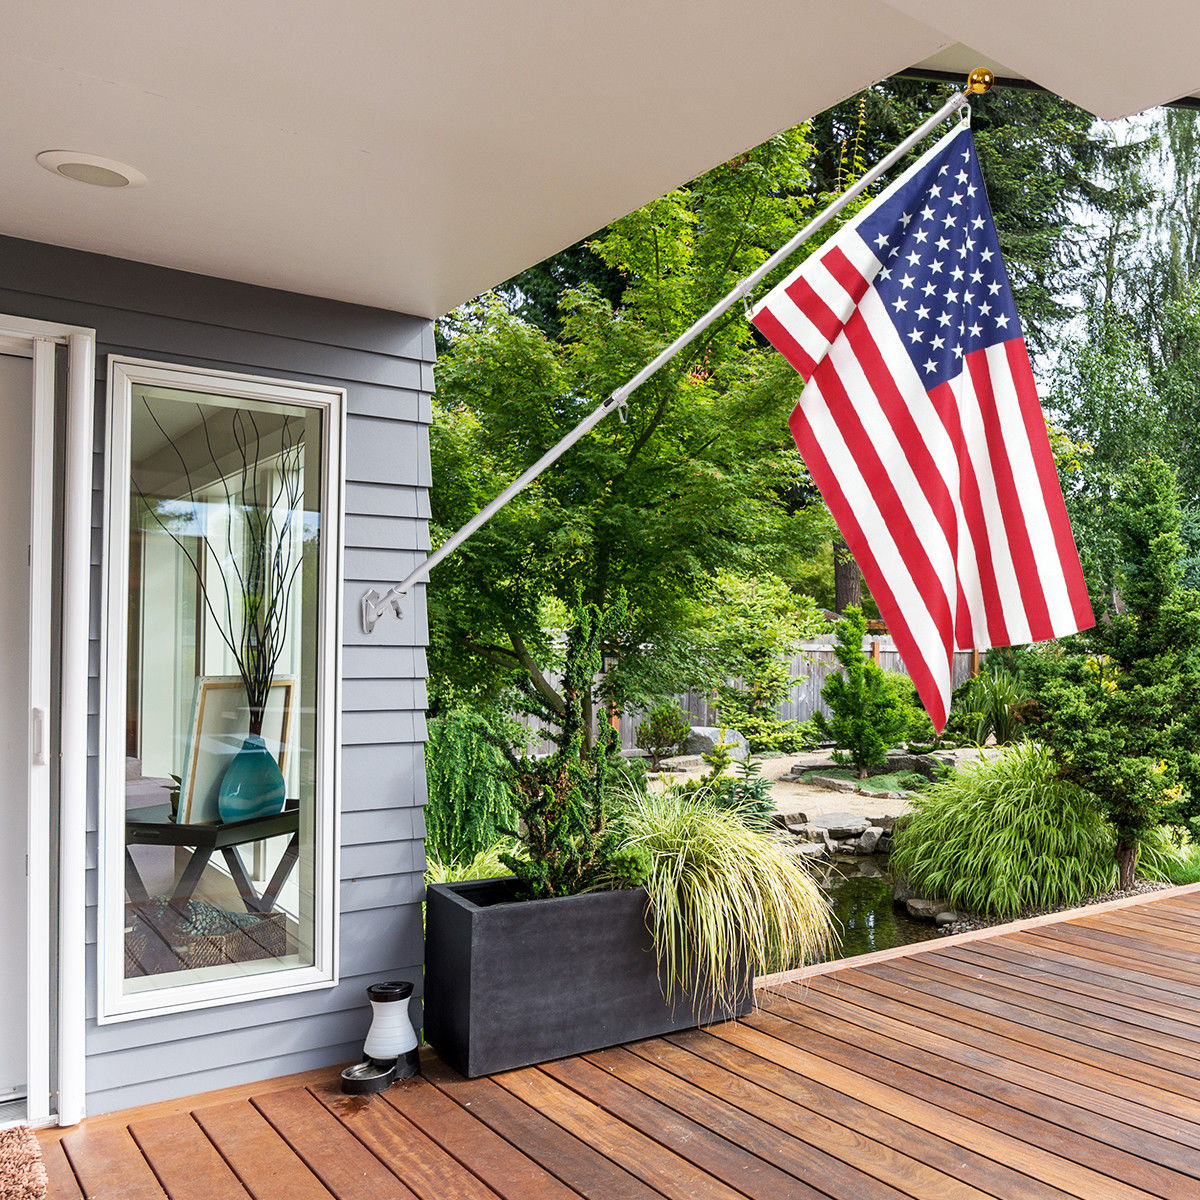 Costway American Flag Kit Wall Mount 6 Ft Spinning pole 3'x5' US Flag Gold Ball Aluminum